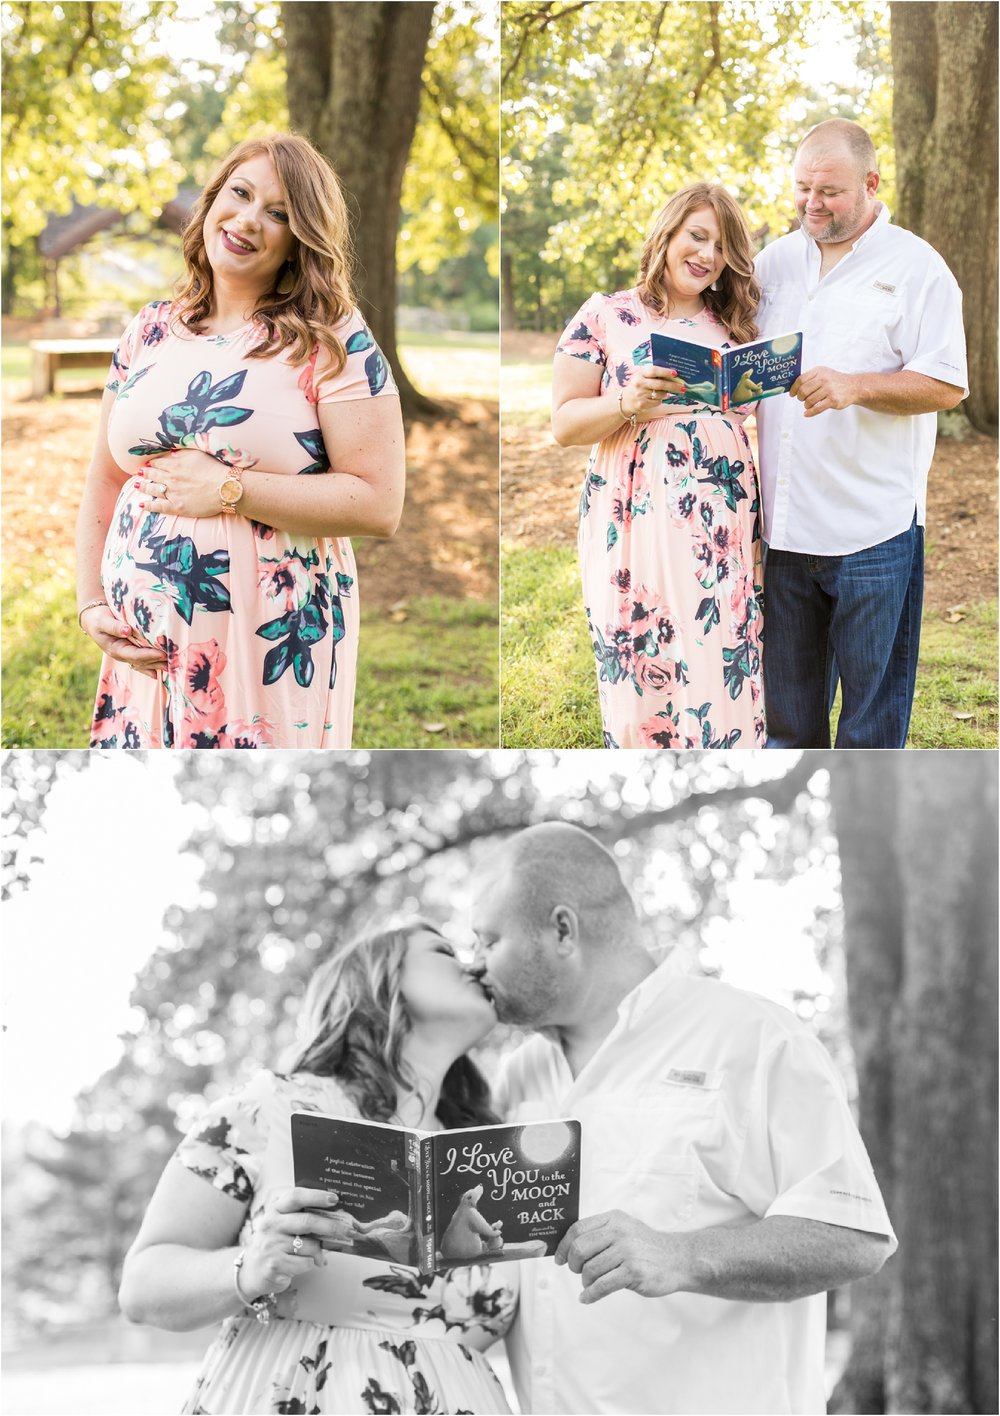 Savannah Eve Photography- Hinton Maternity-22.jpg